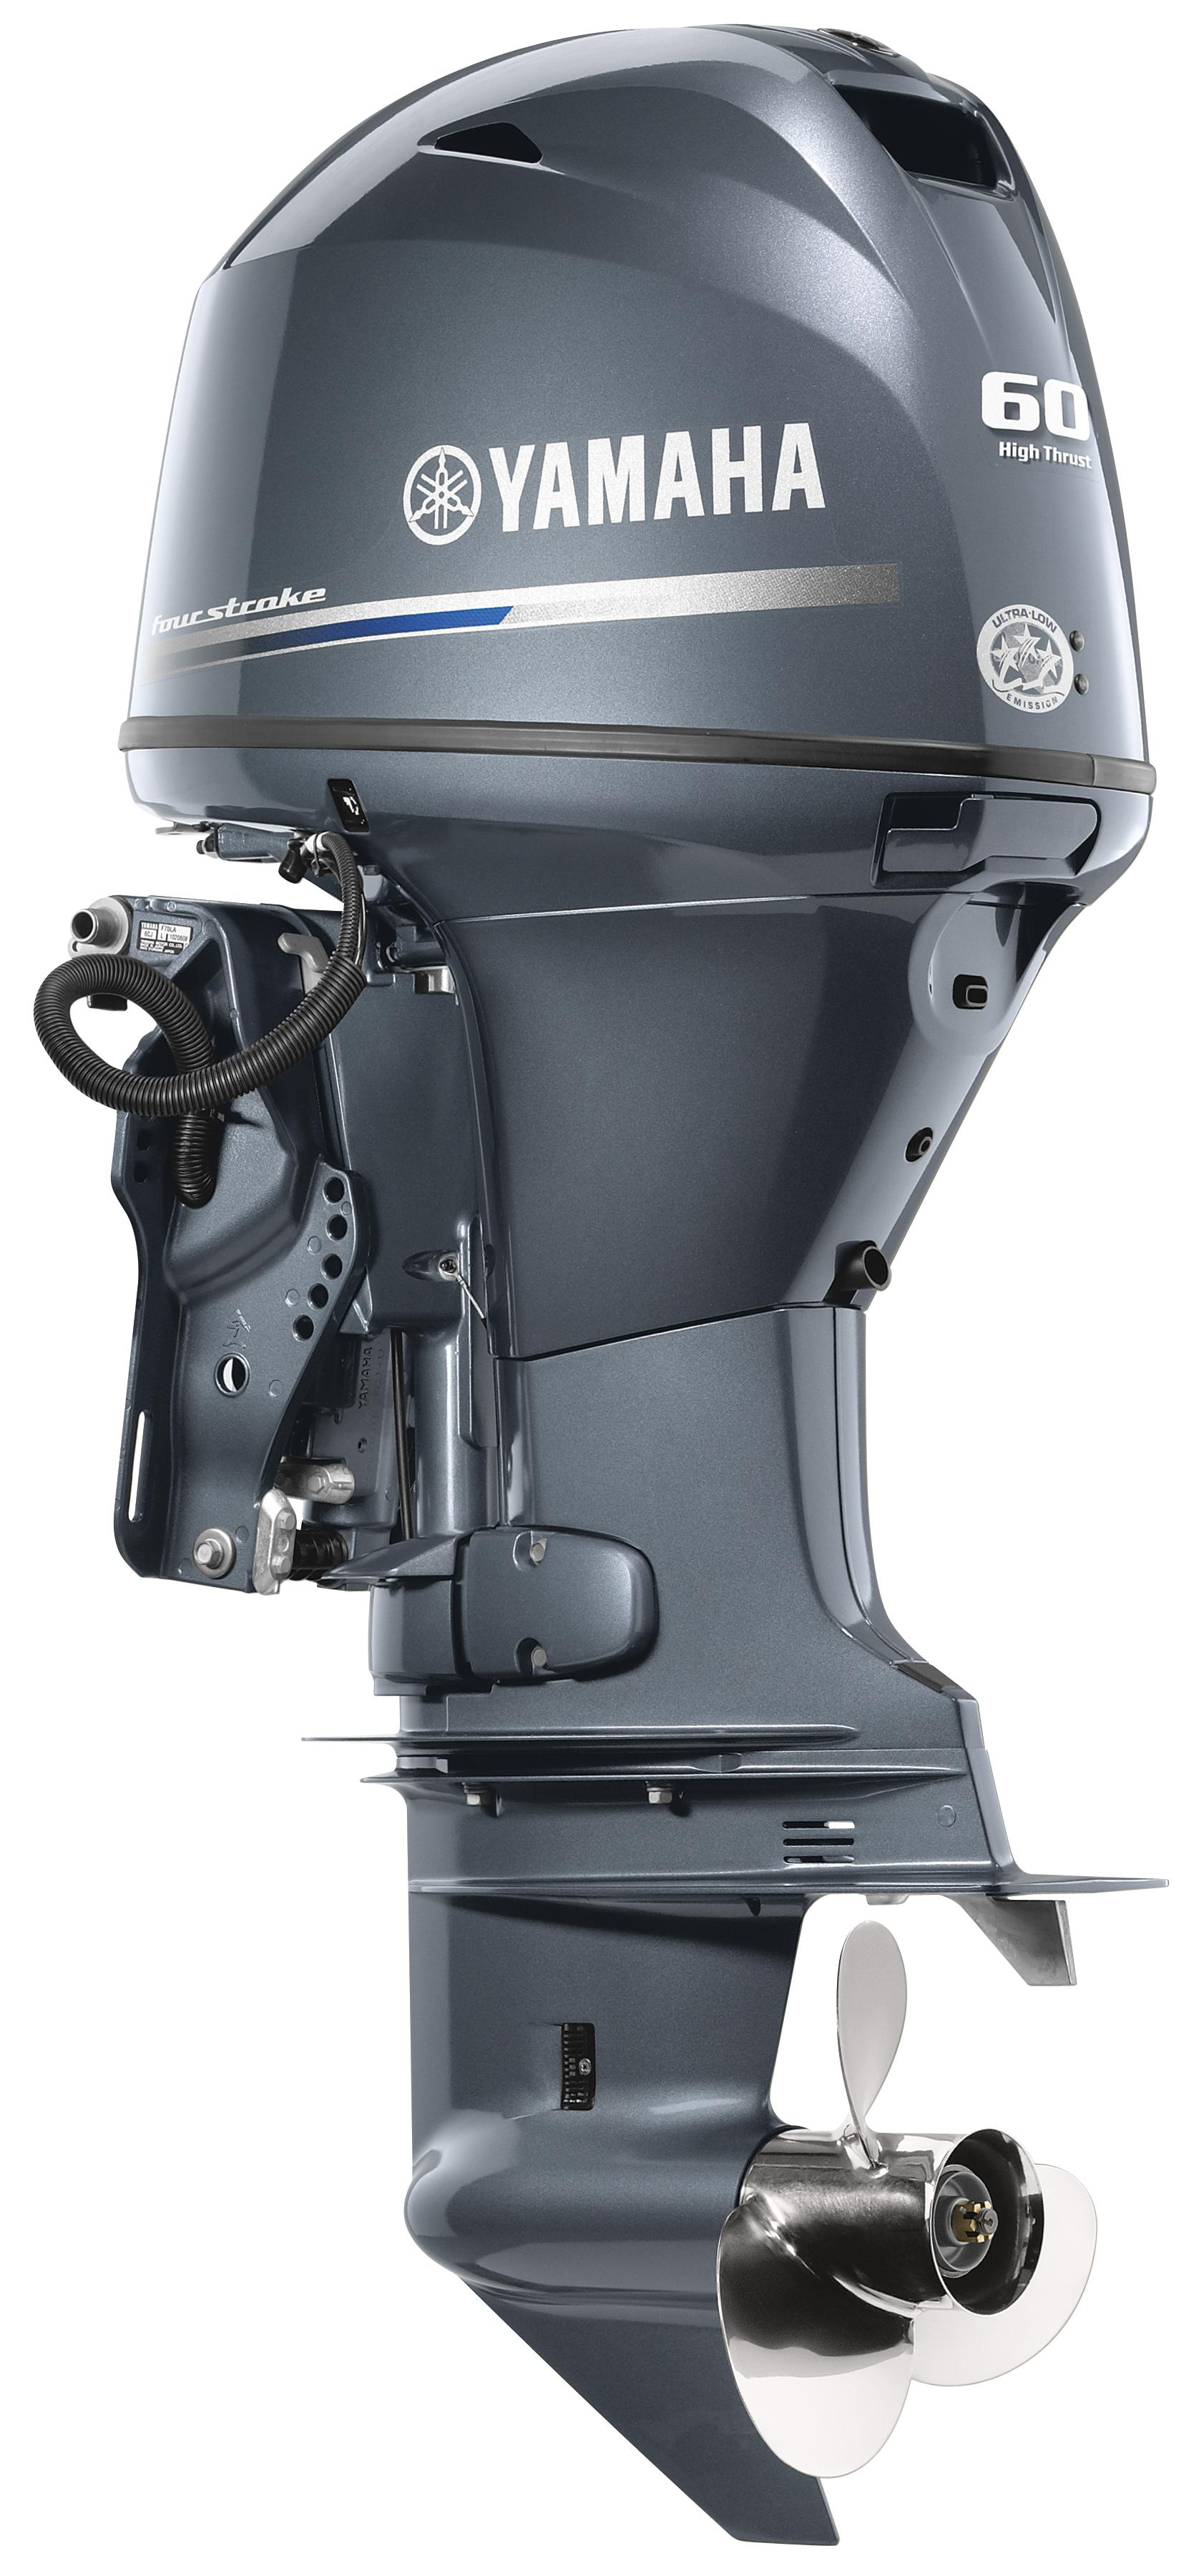 Yamaha Outboards at low prices, parts & servicing